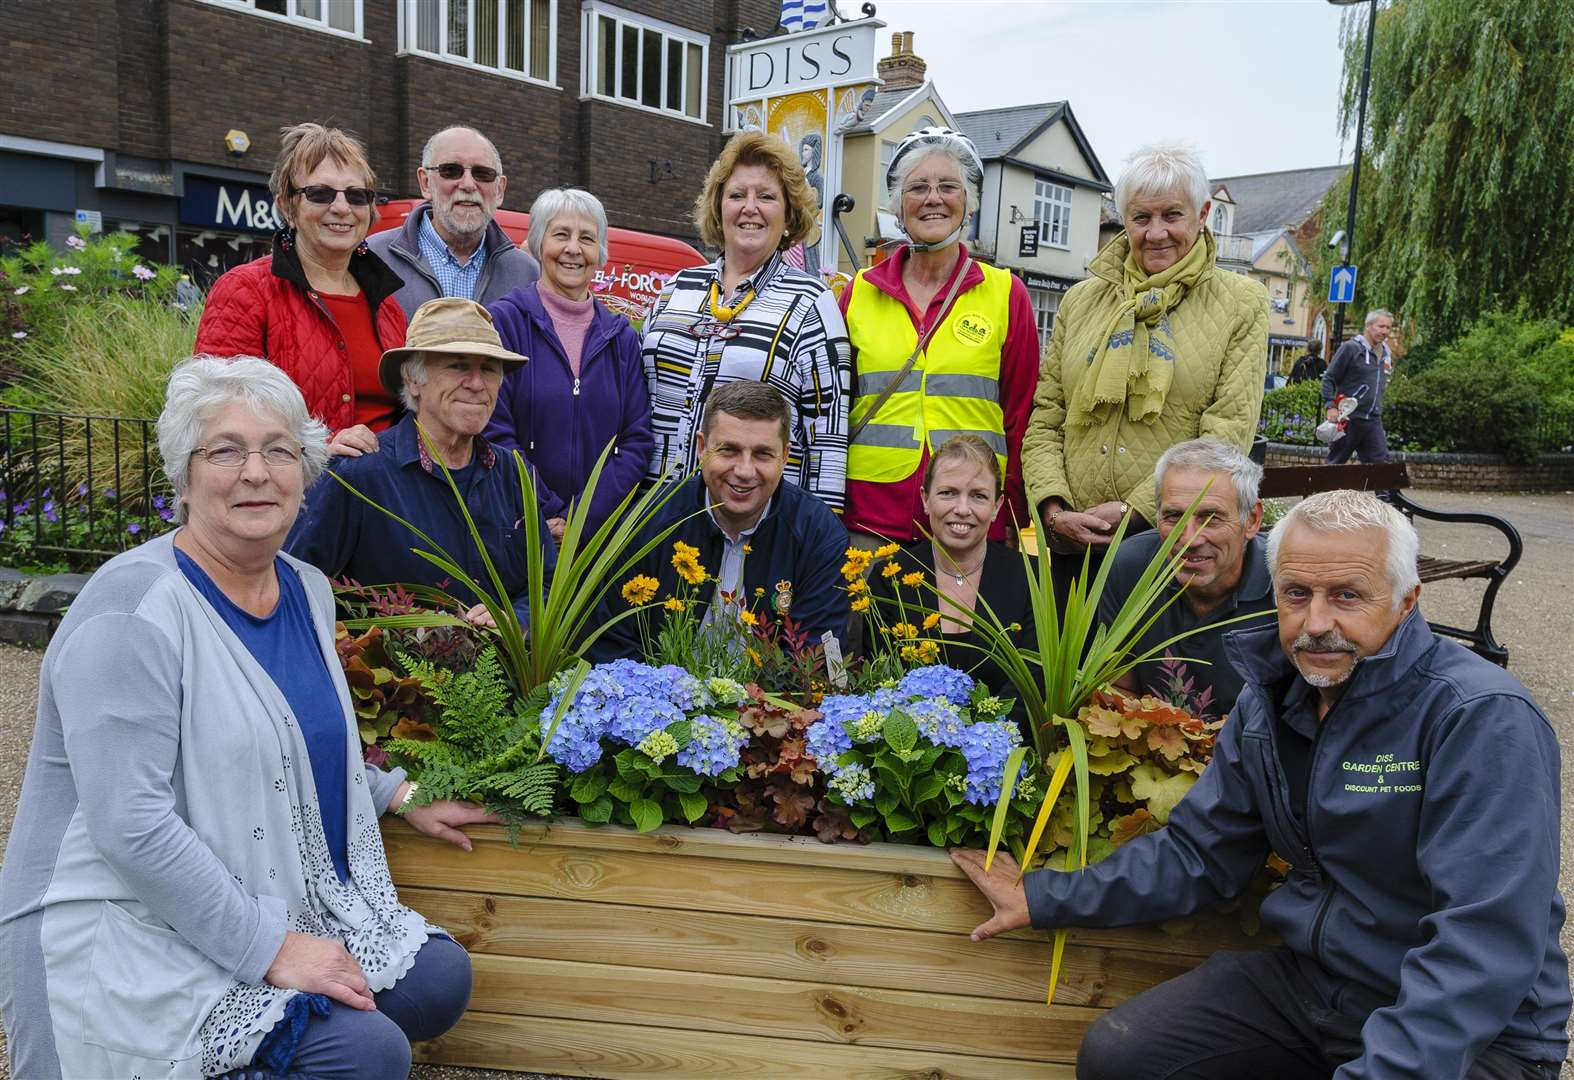 Former carnival organiser aims to line Diss highstreet with flowers